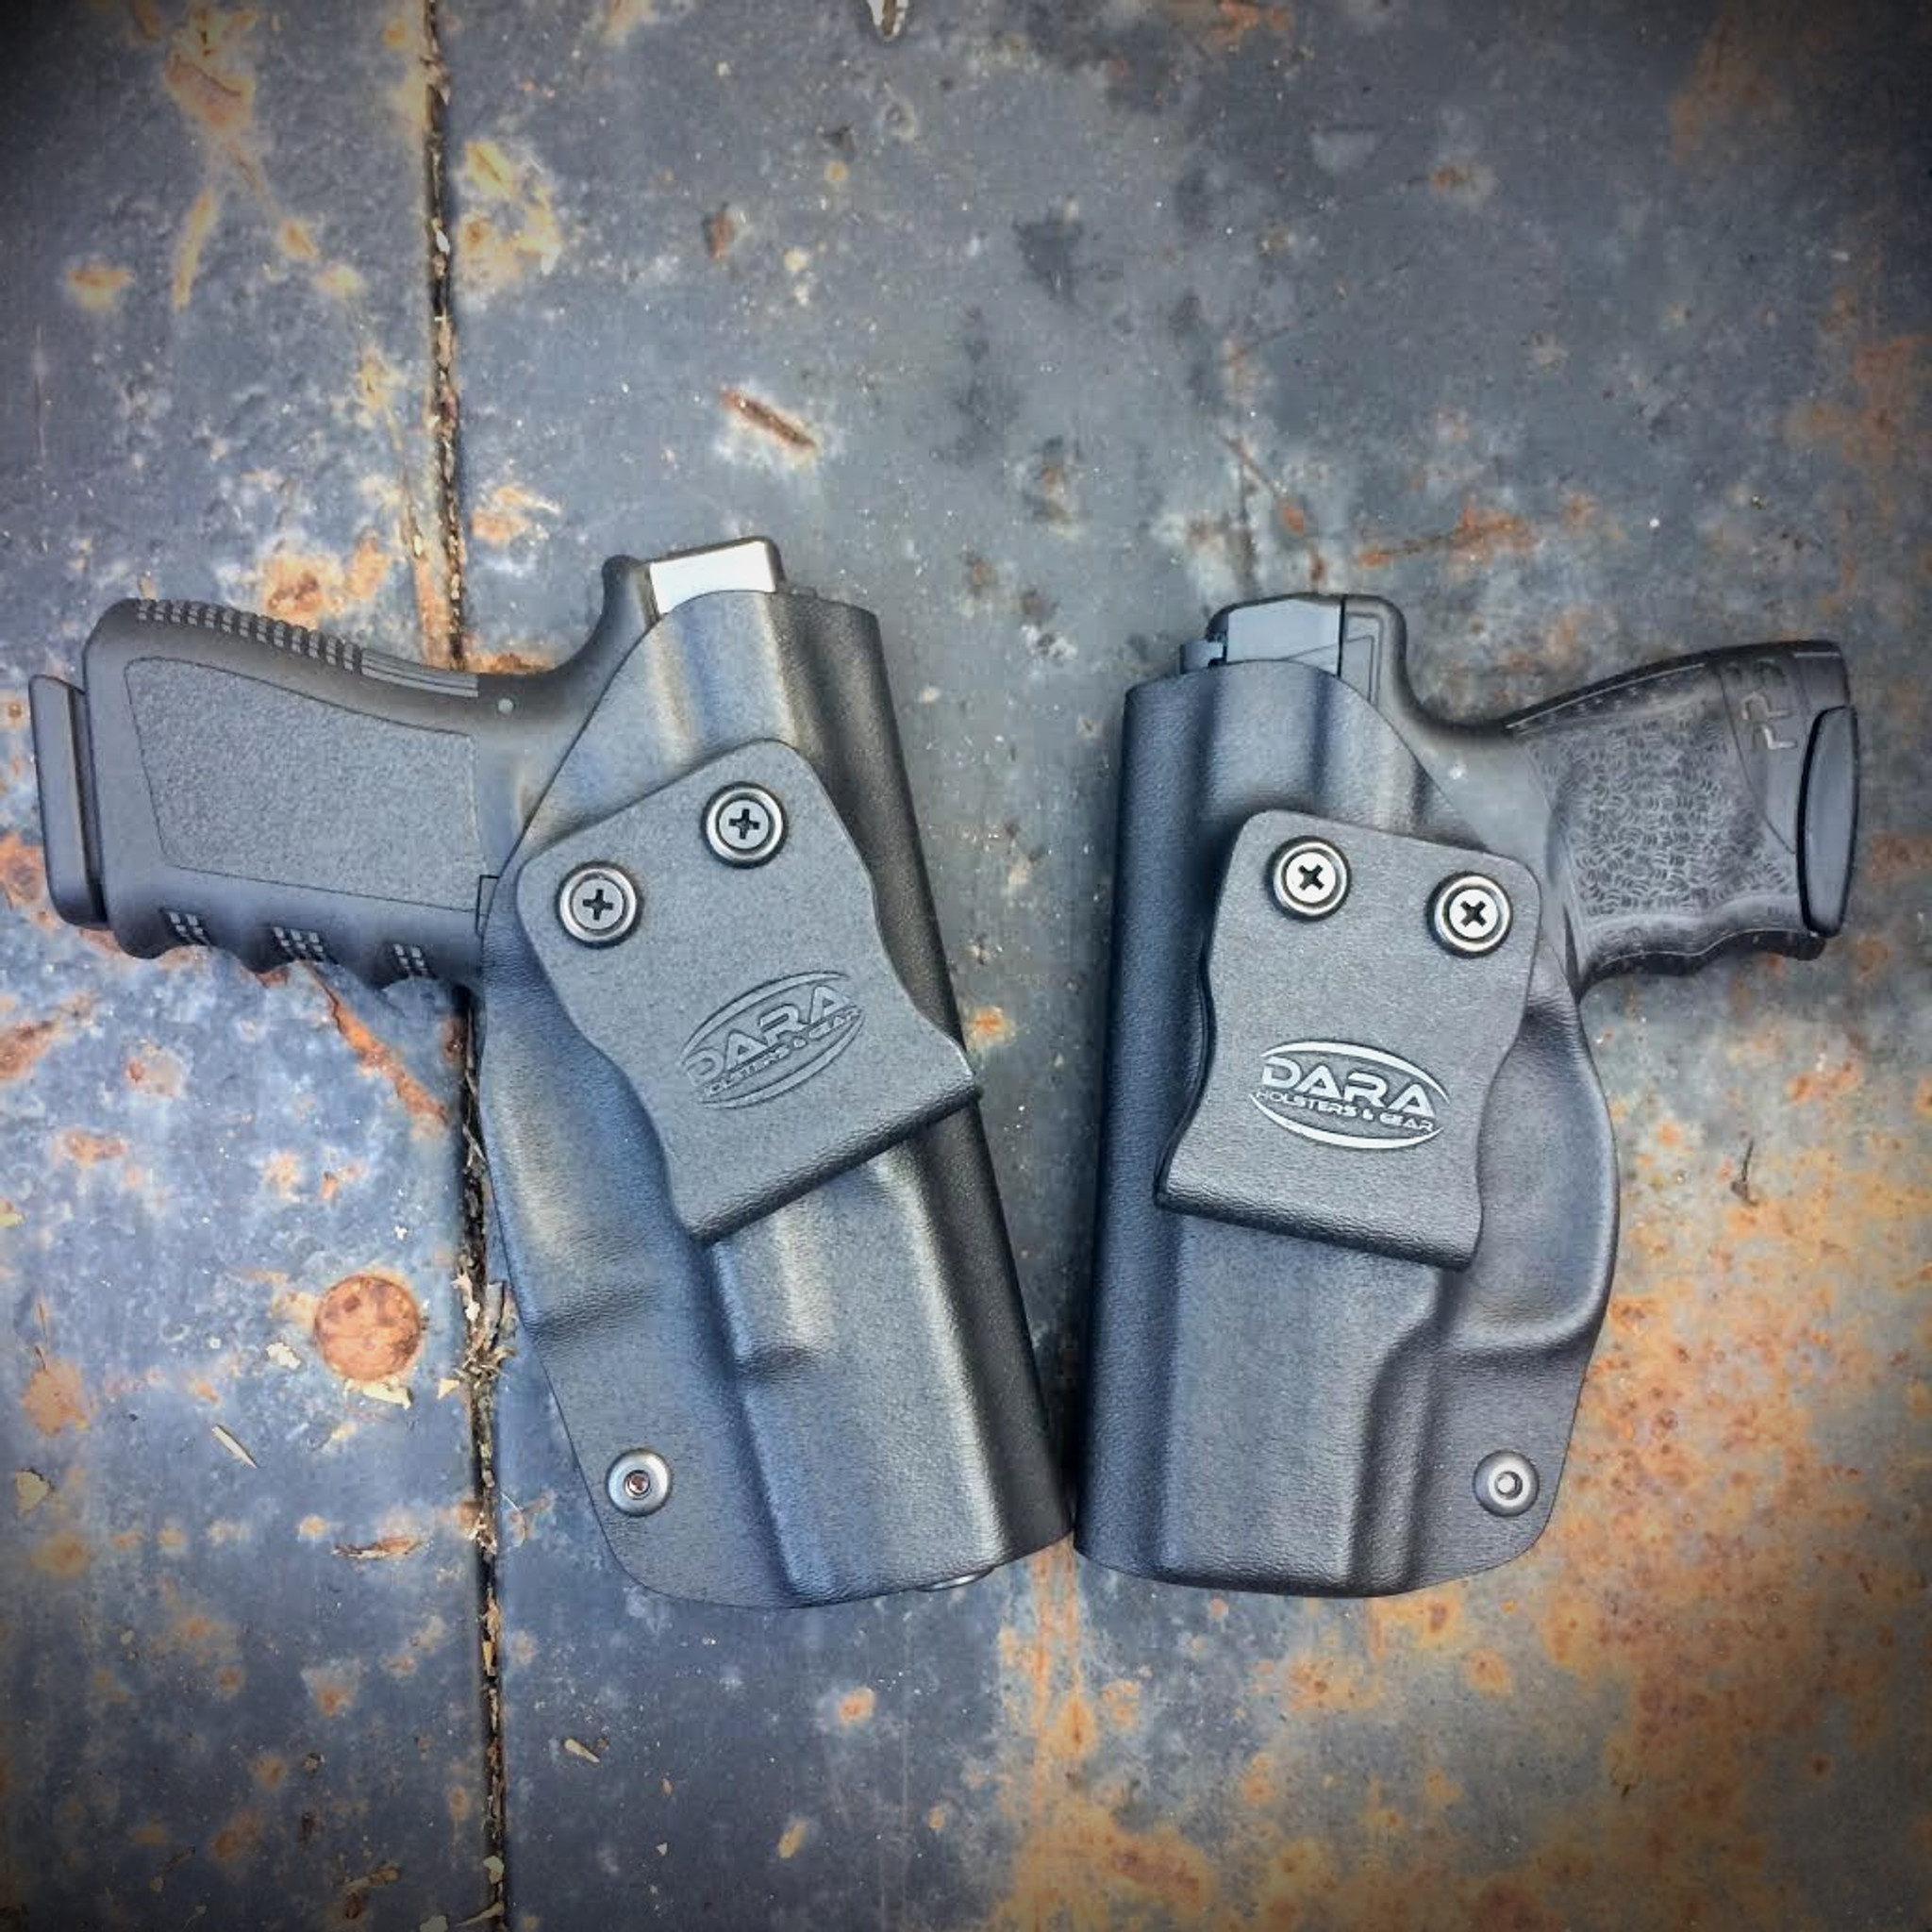 Dara Holsters Picture